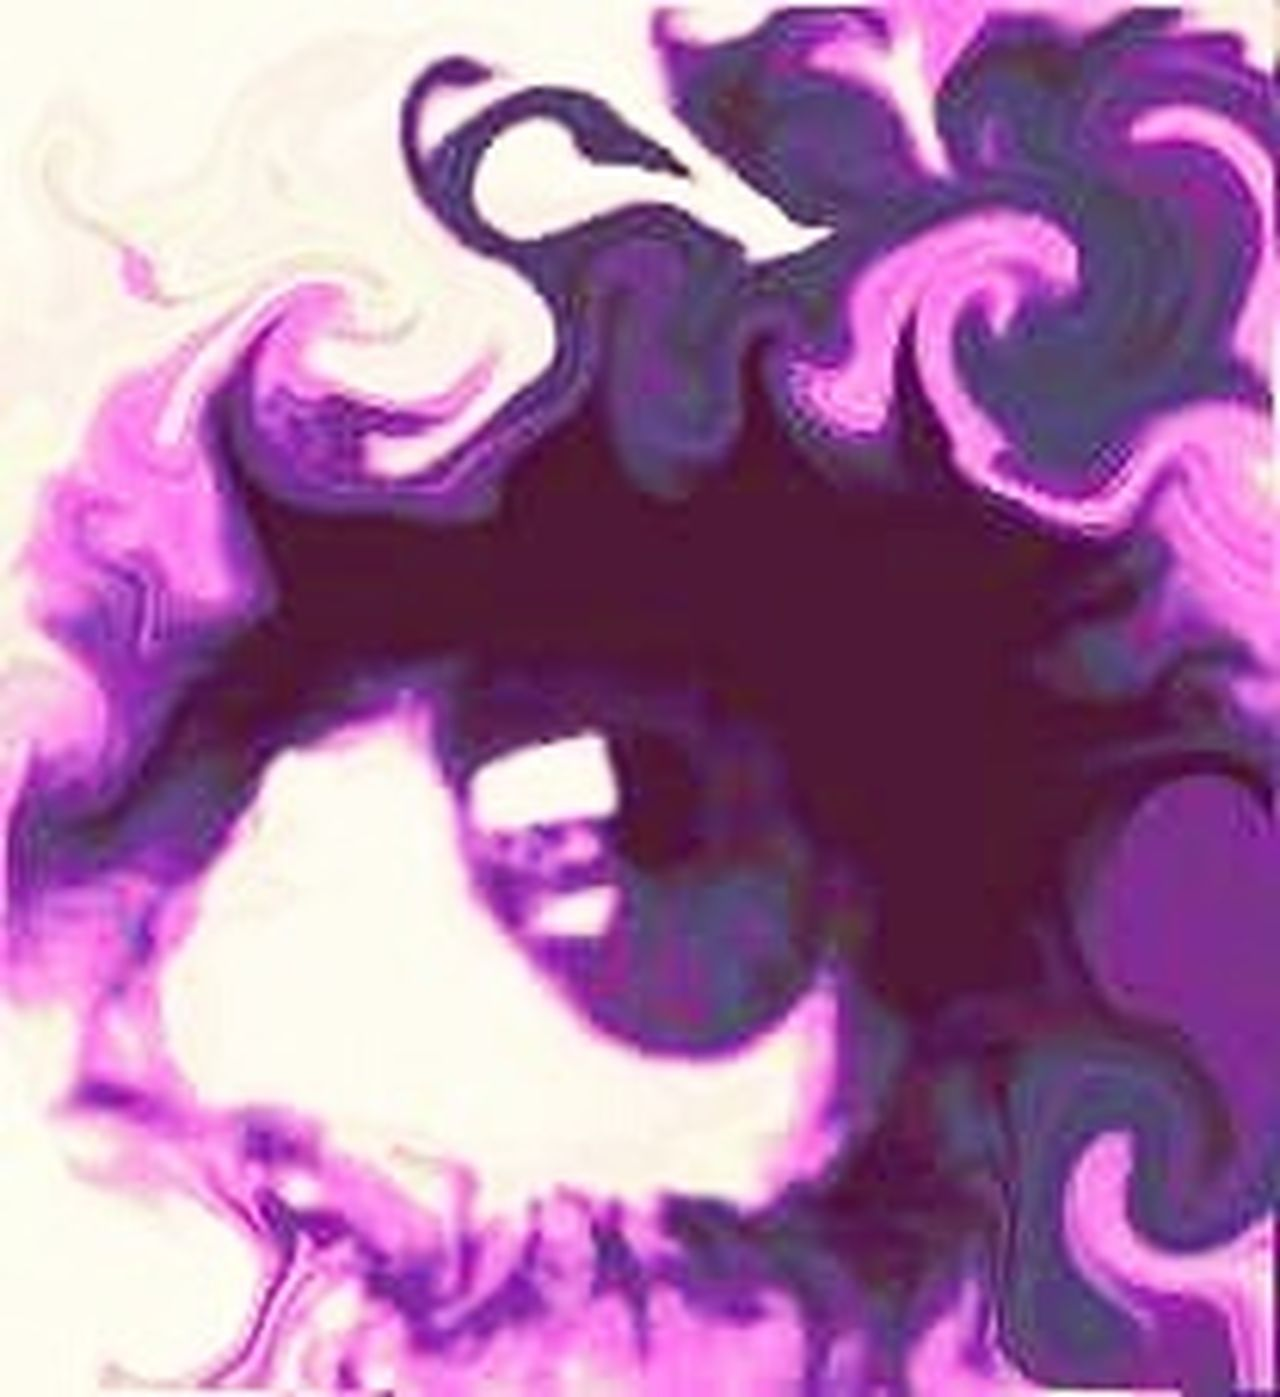 She sees.. Mobileartistry Week On Eyeem Taking Photos Mobile Artistry Self Portrait Experiments Mobile Editing Freestyle Variation Eyem Gallery Artistic Expression Color Photography Mobile Photography Onderground. Art Expression Artdecostyle Color Explosion Check This Out Weekly Challenge